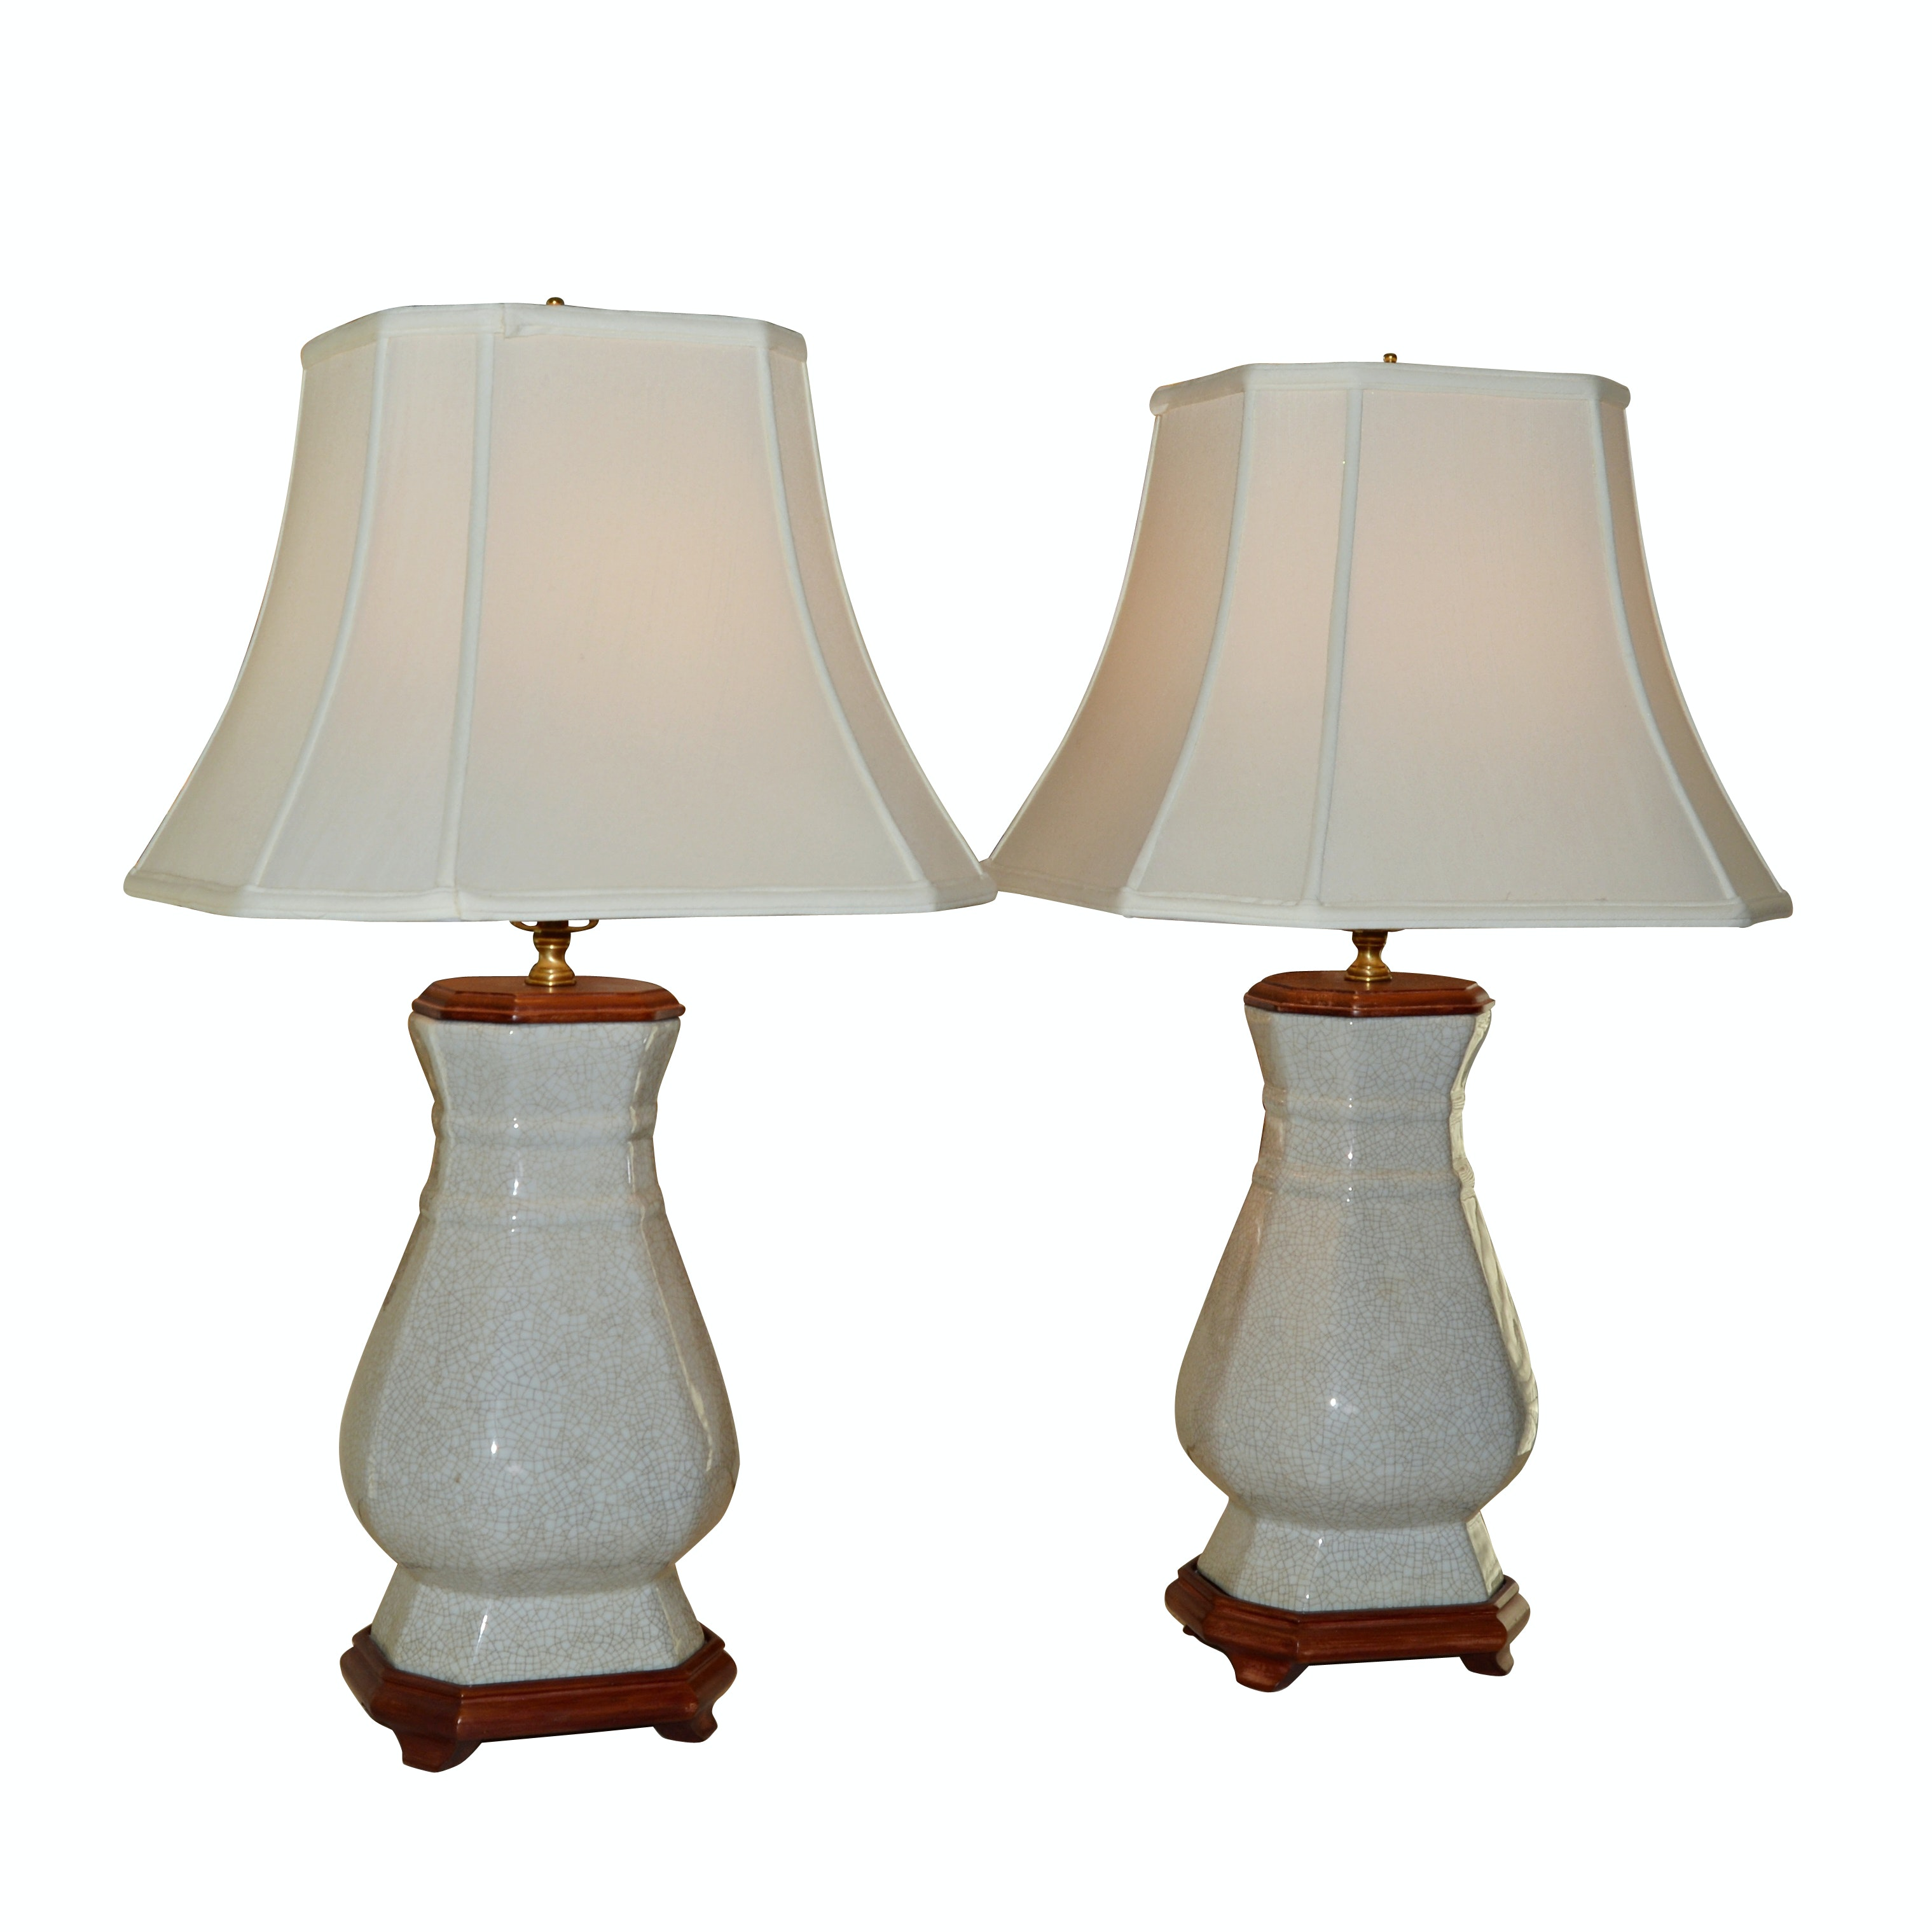 Pair of Crackle Finish Ceramic Table Lamps